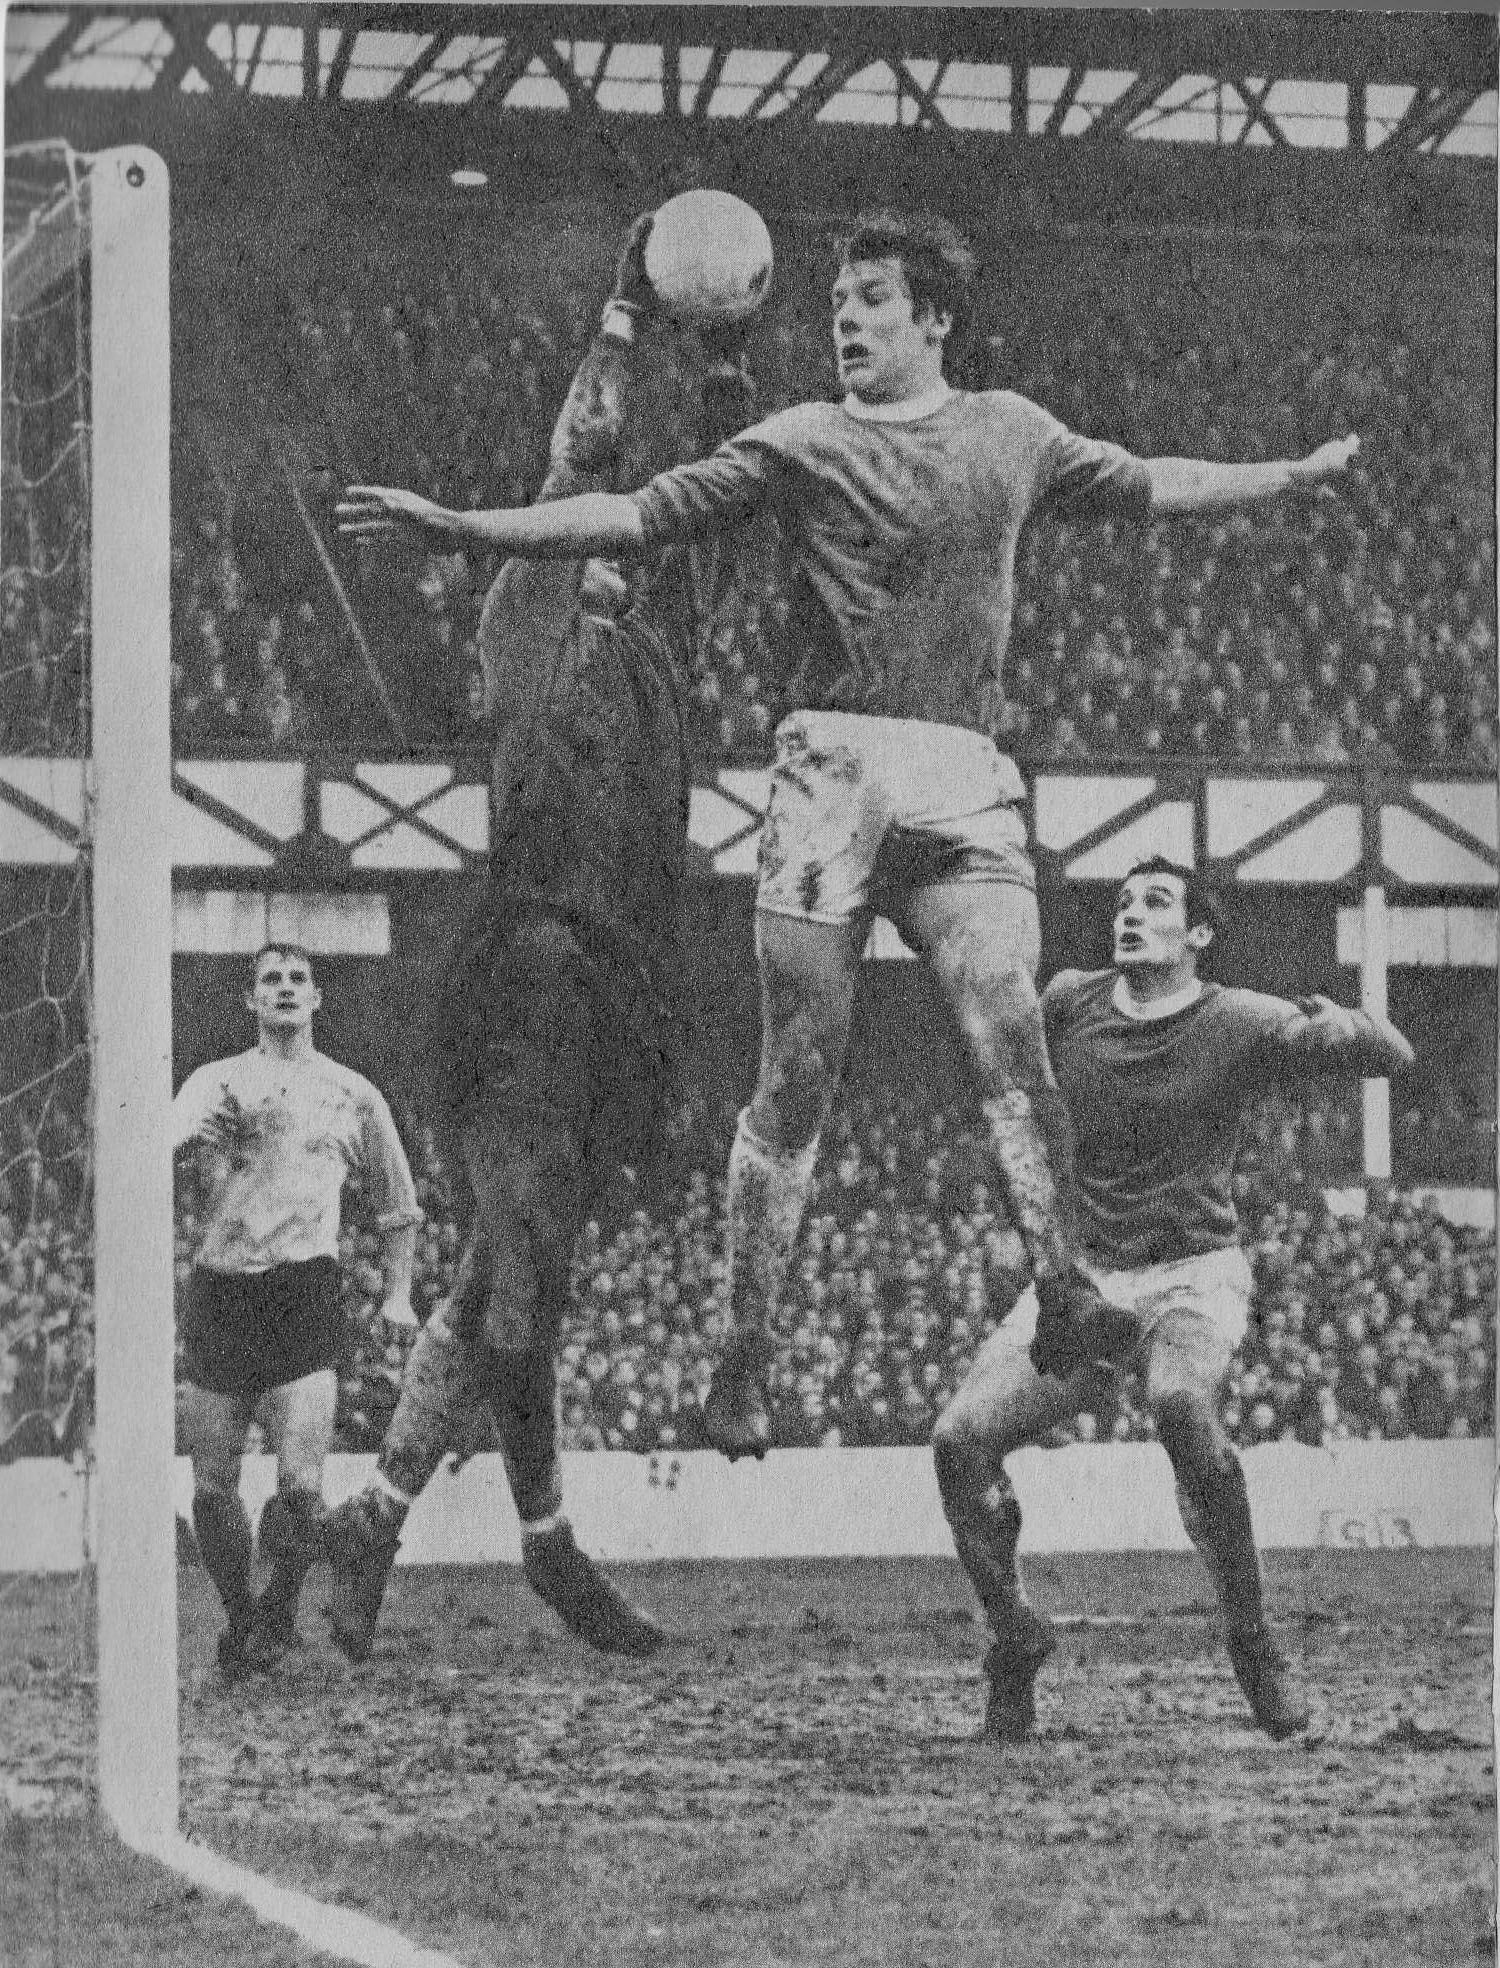 18th January 1969. Ipswich Town goalkeeper David Best snatches the ball off the head of Everton centre forward Joe Royle, at Goodison Park.